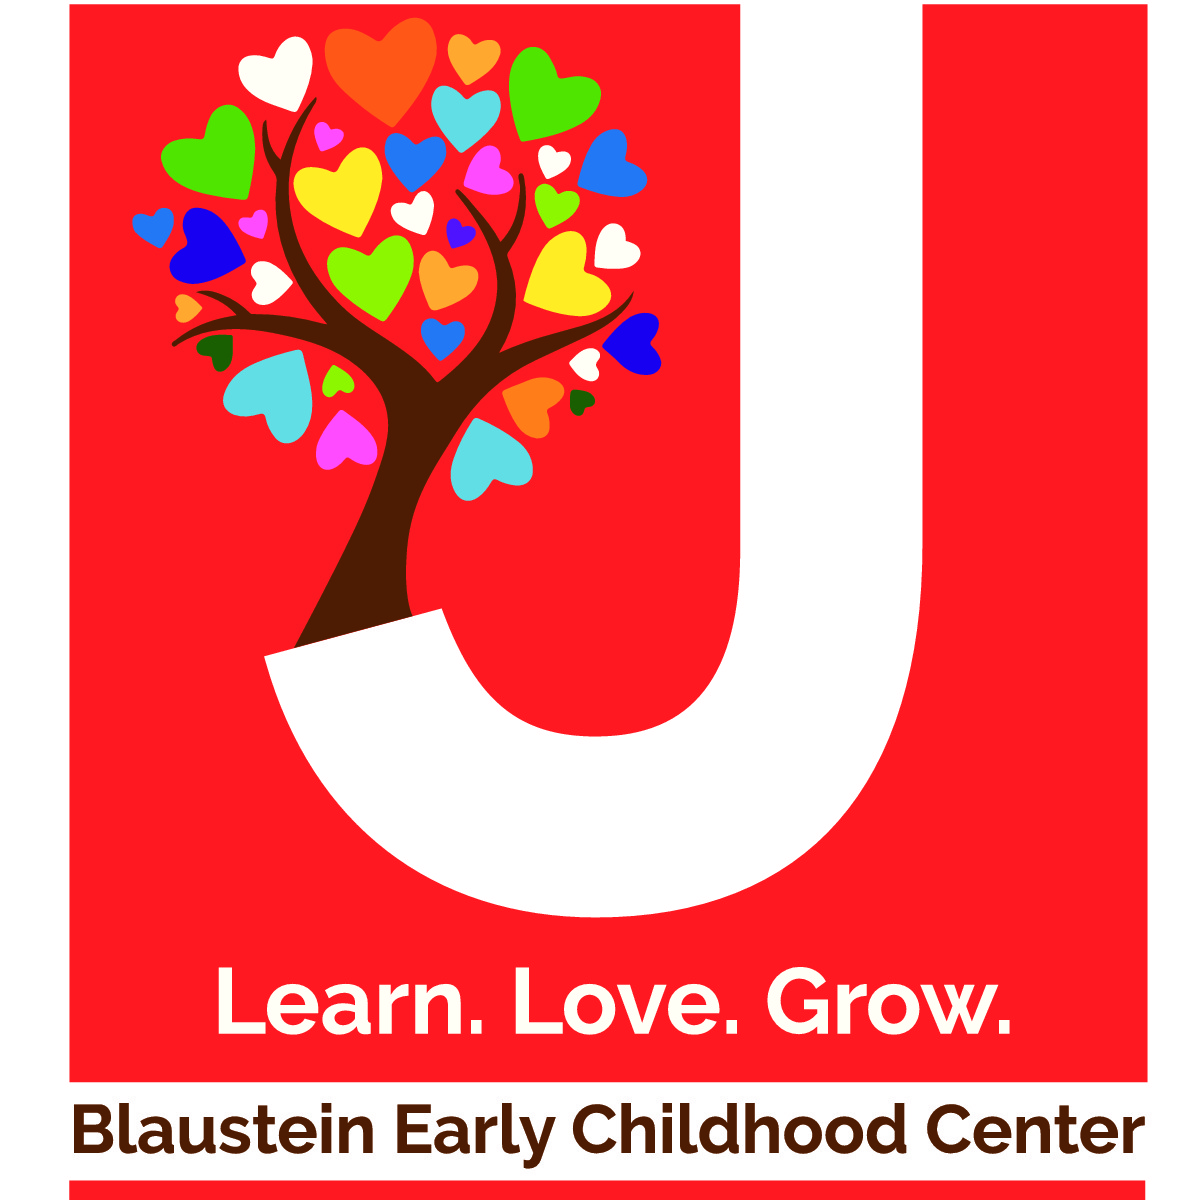 JCC Blaustein Early Childhood Center